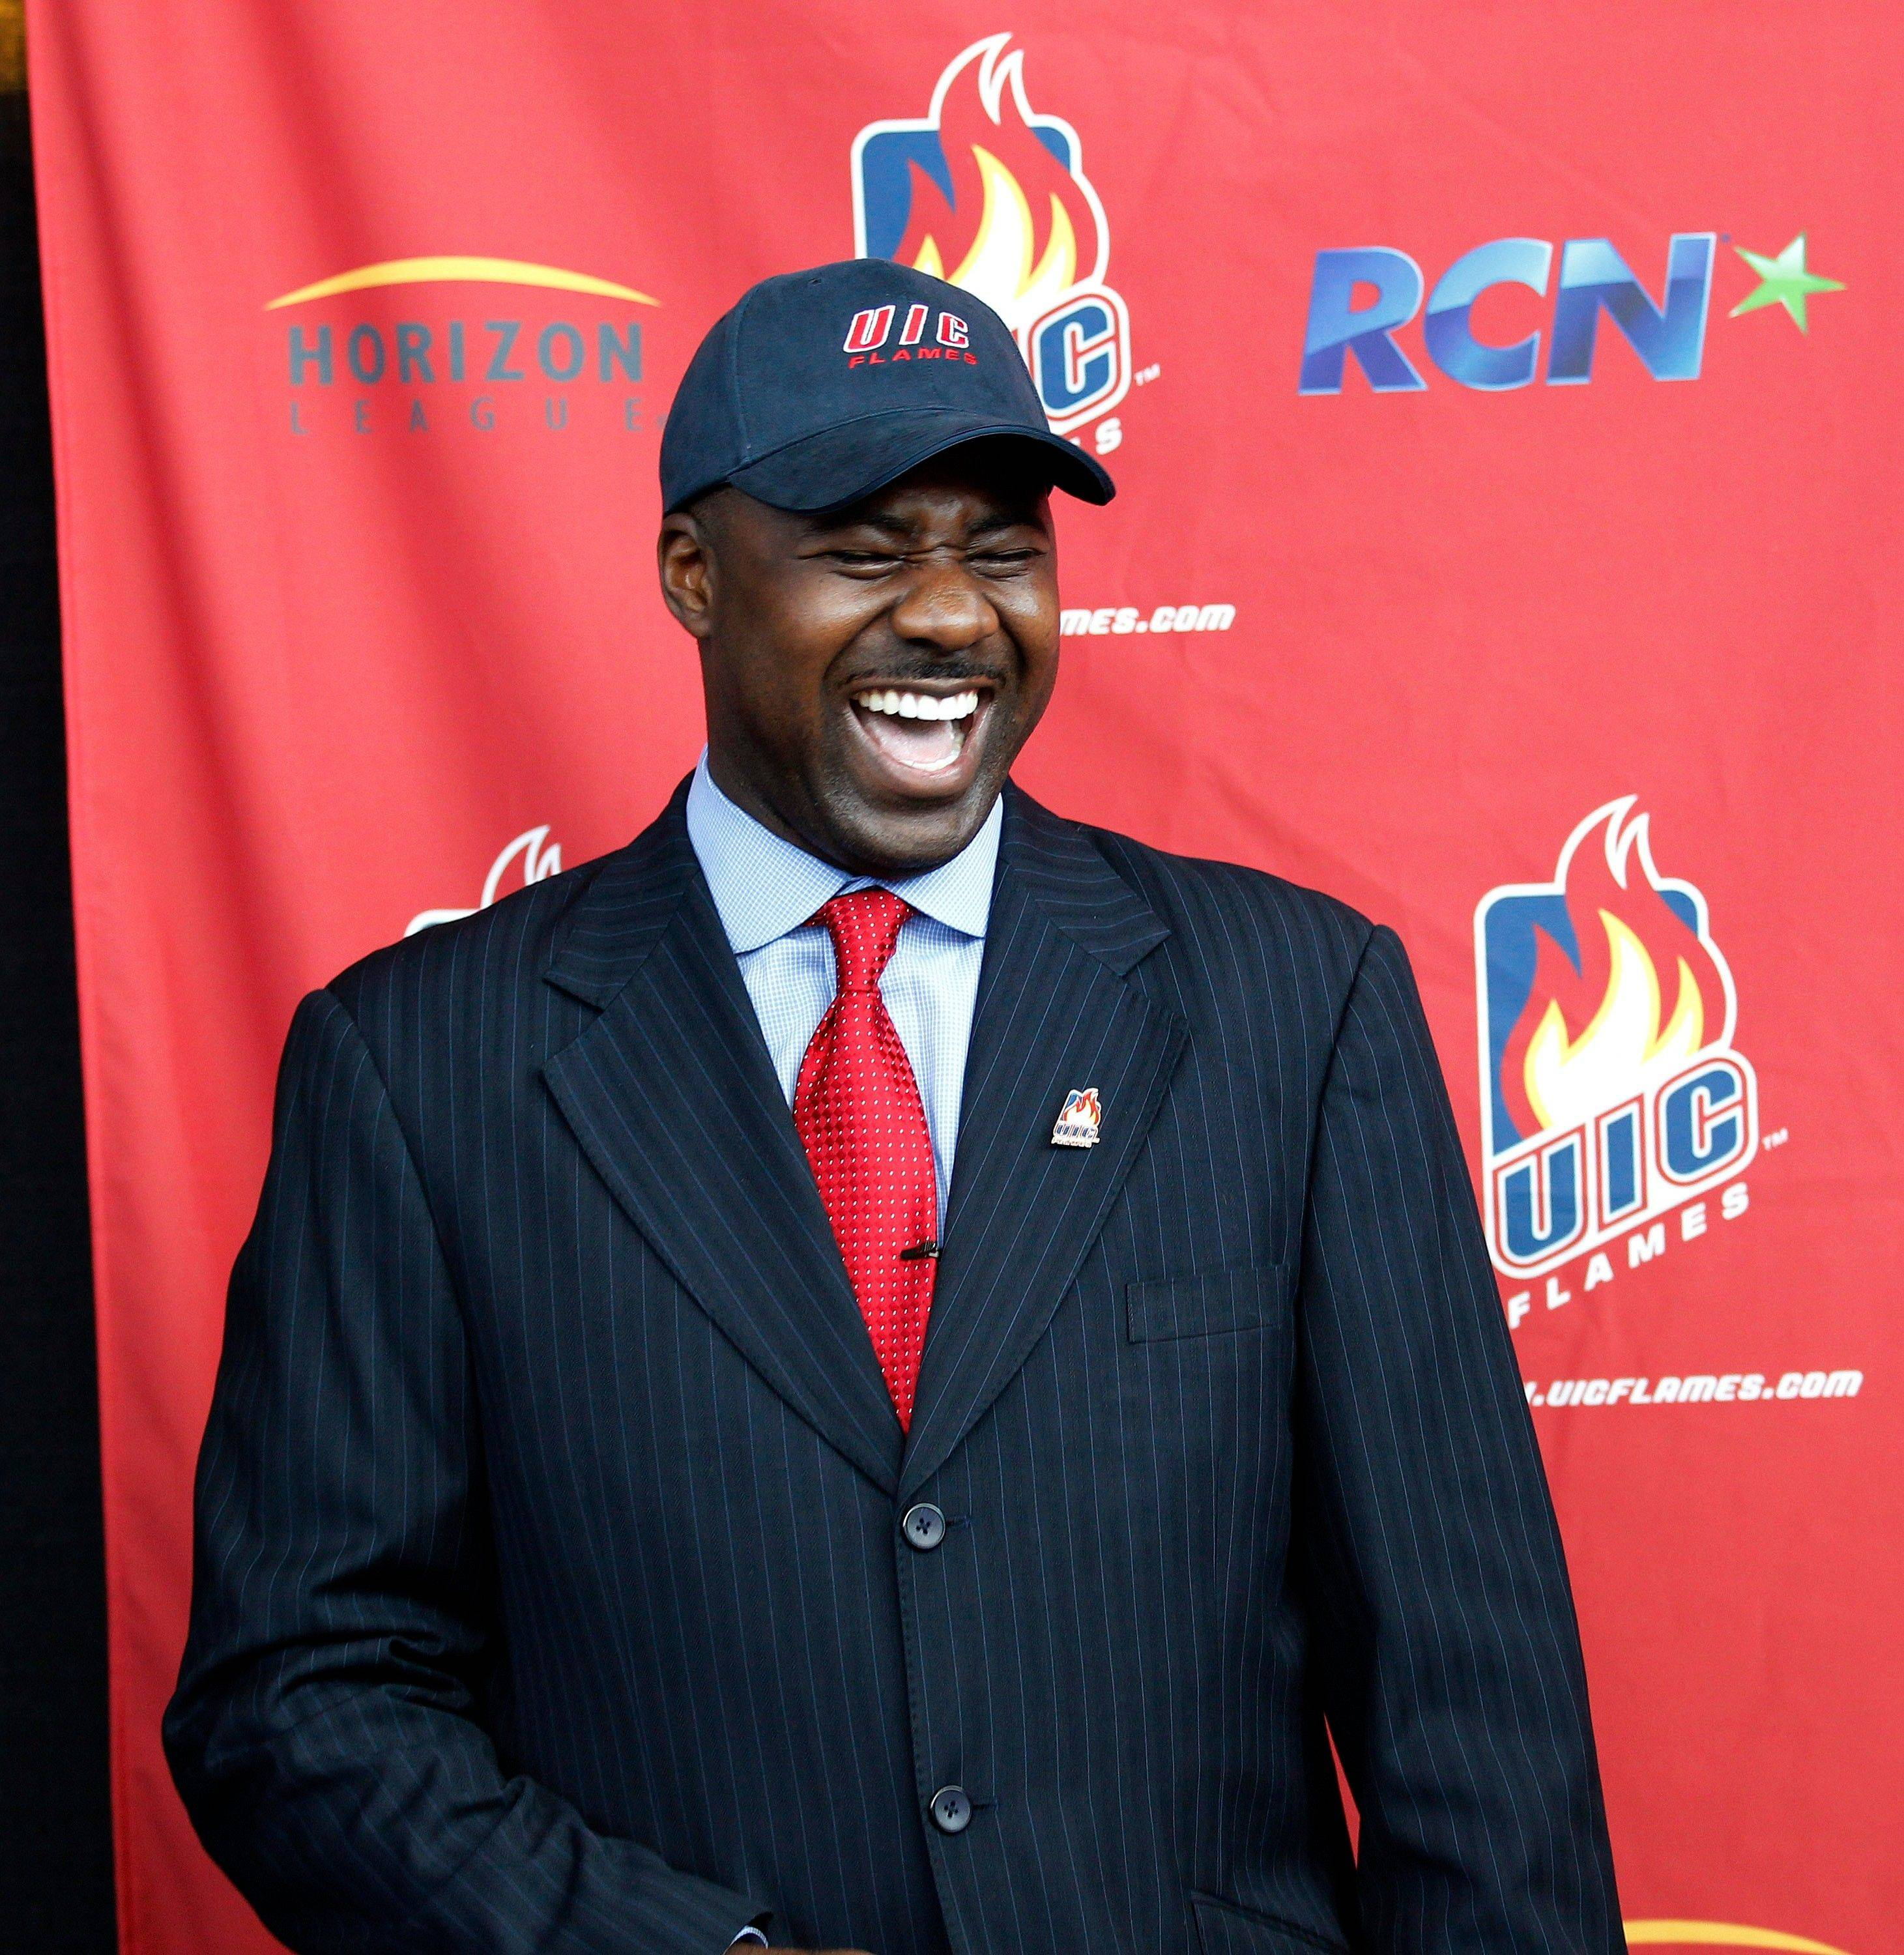 He has a smile here, but Howard Moore, the new men's basketball coach at UIC, likes his players to show plenty of grit and a level of toughness he learned while coaching at Wisconsin.